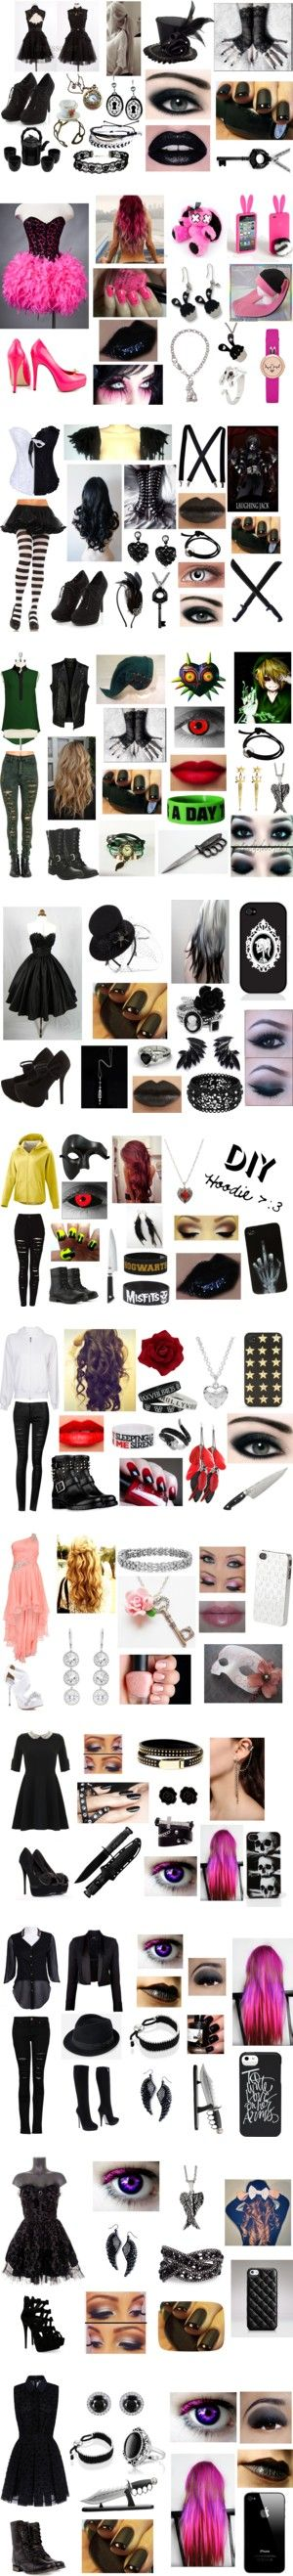 """""""~ Creepypasta Outfits ~"""" by neko-of-the-night ❤ liked on Polyvore"""